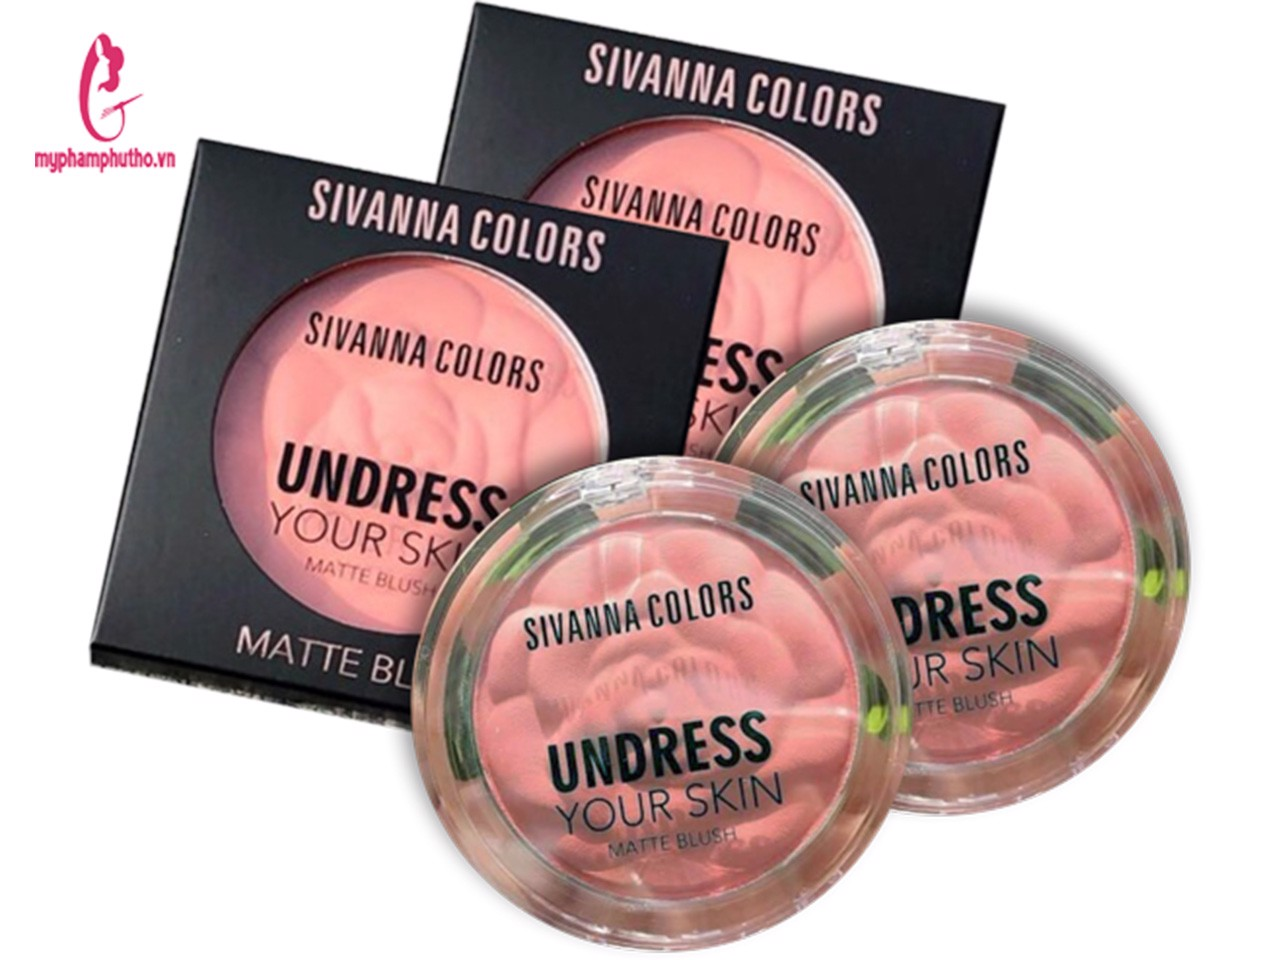 Phấn má hồng Sivanna Colors Undress Your Skin Matte Blush Thái Lan